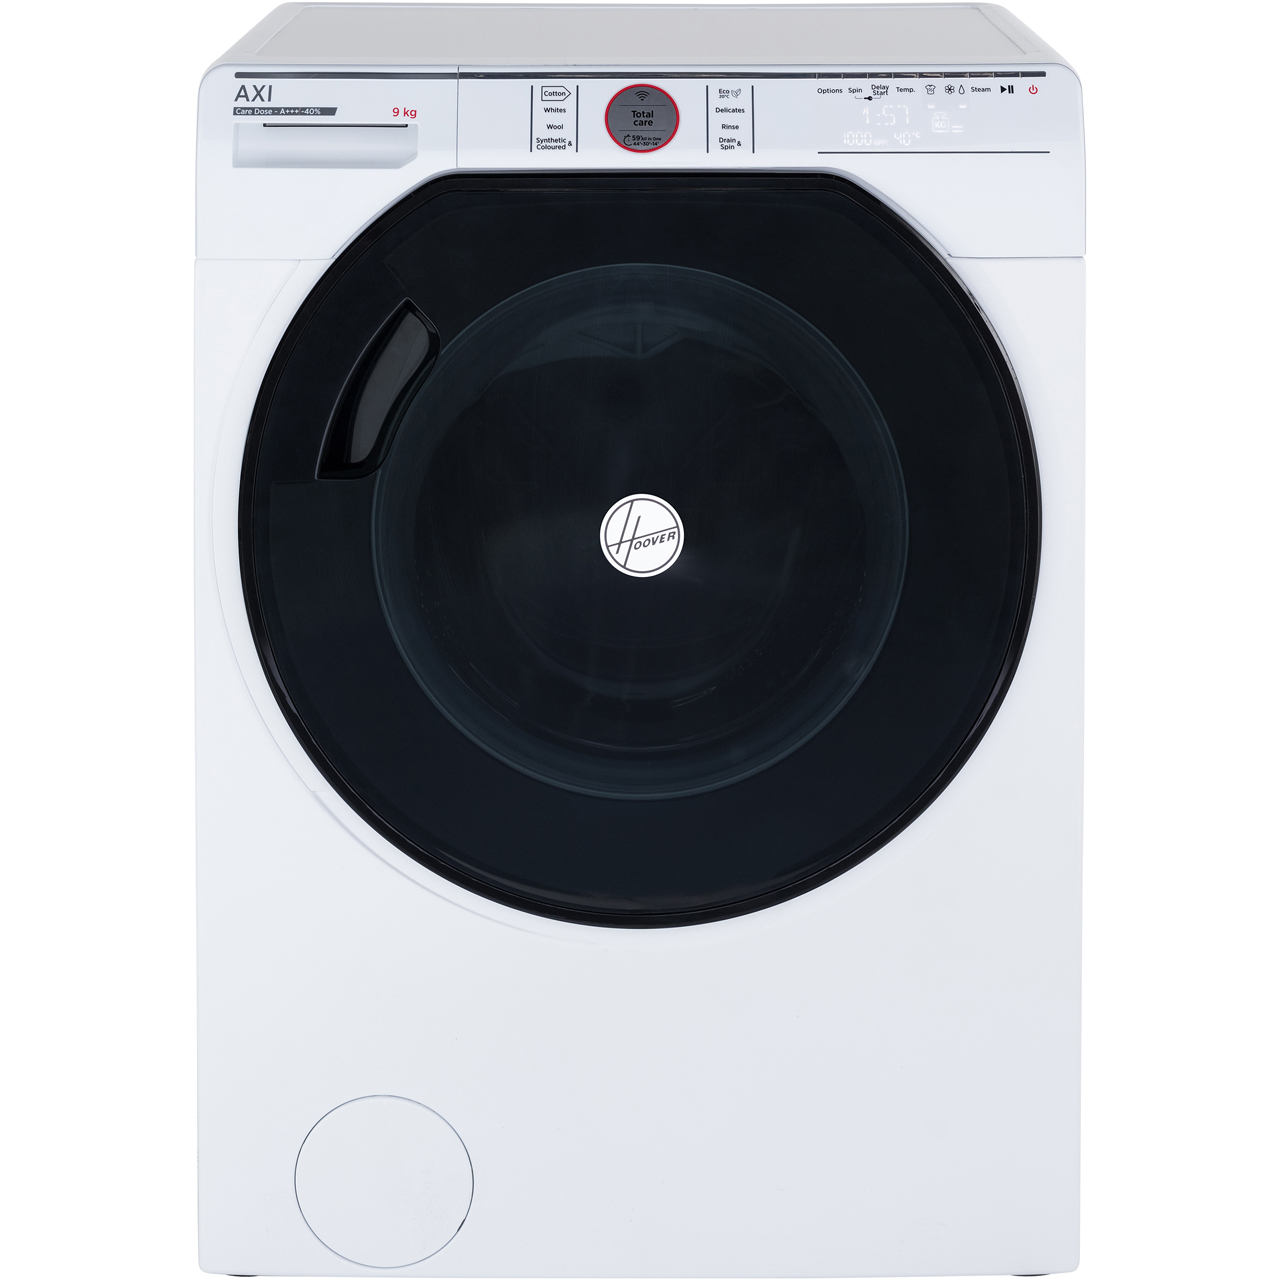 11ee50c216917 ... Hoover AXI AWMPD413LH7 Wifi Connected 13Kg Washing Machine with 1400  rpm - White - A+++ Rated ...